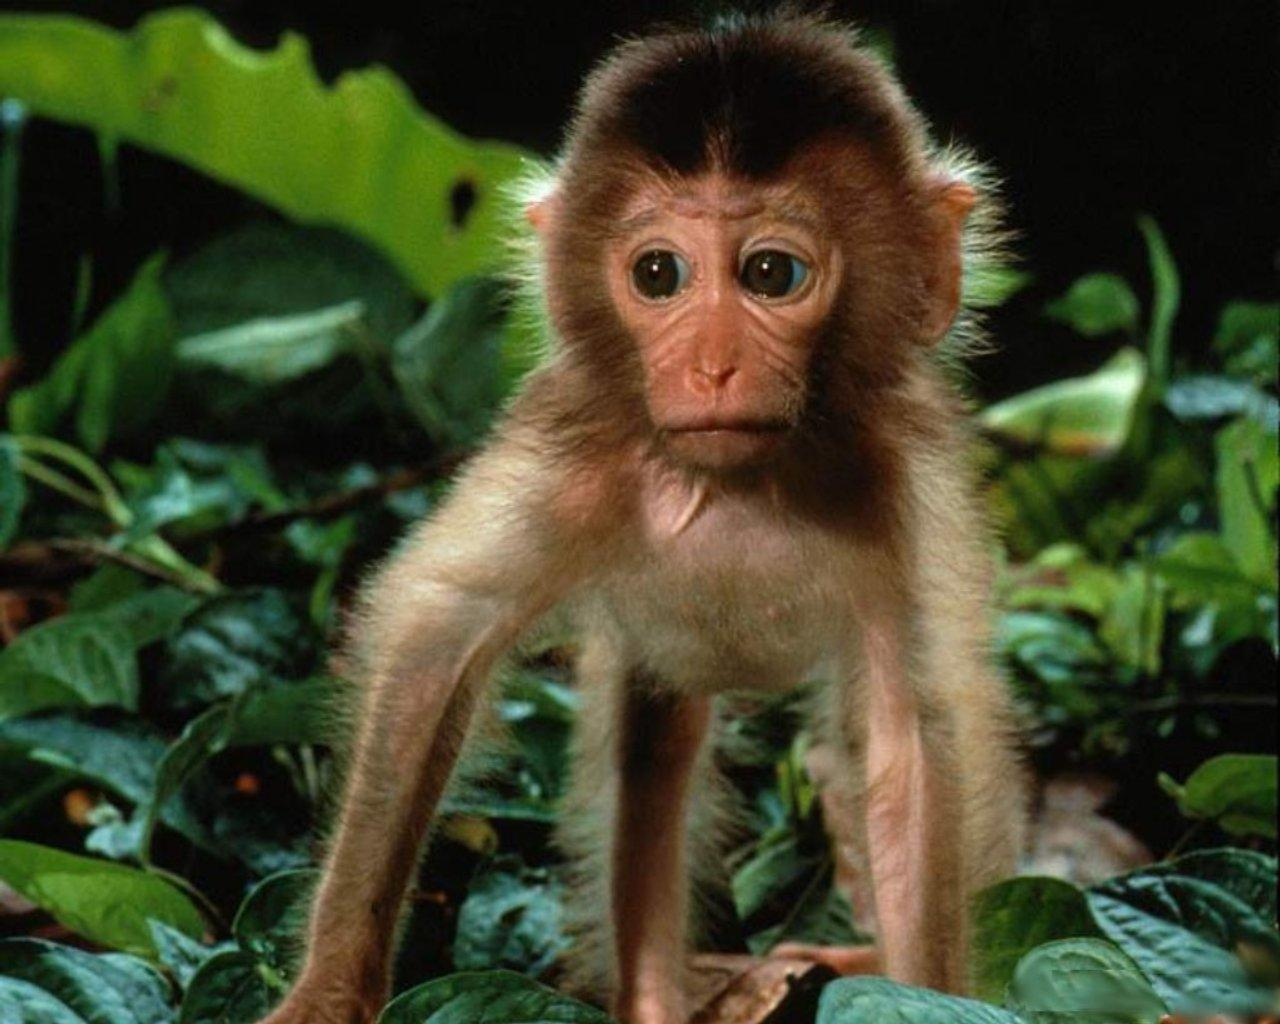 Cute Baby Monkey Wallpapers Free Download